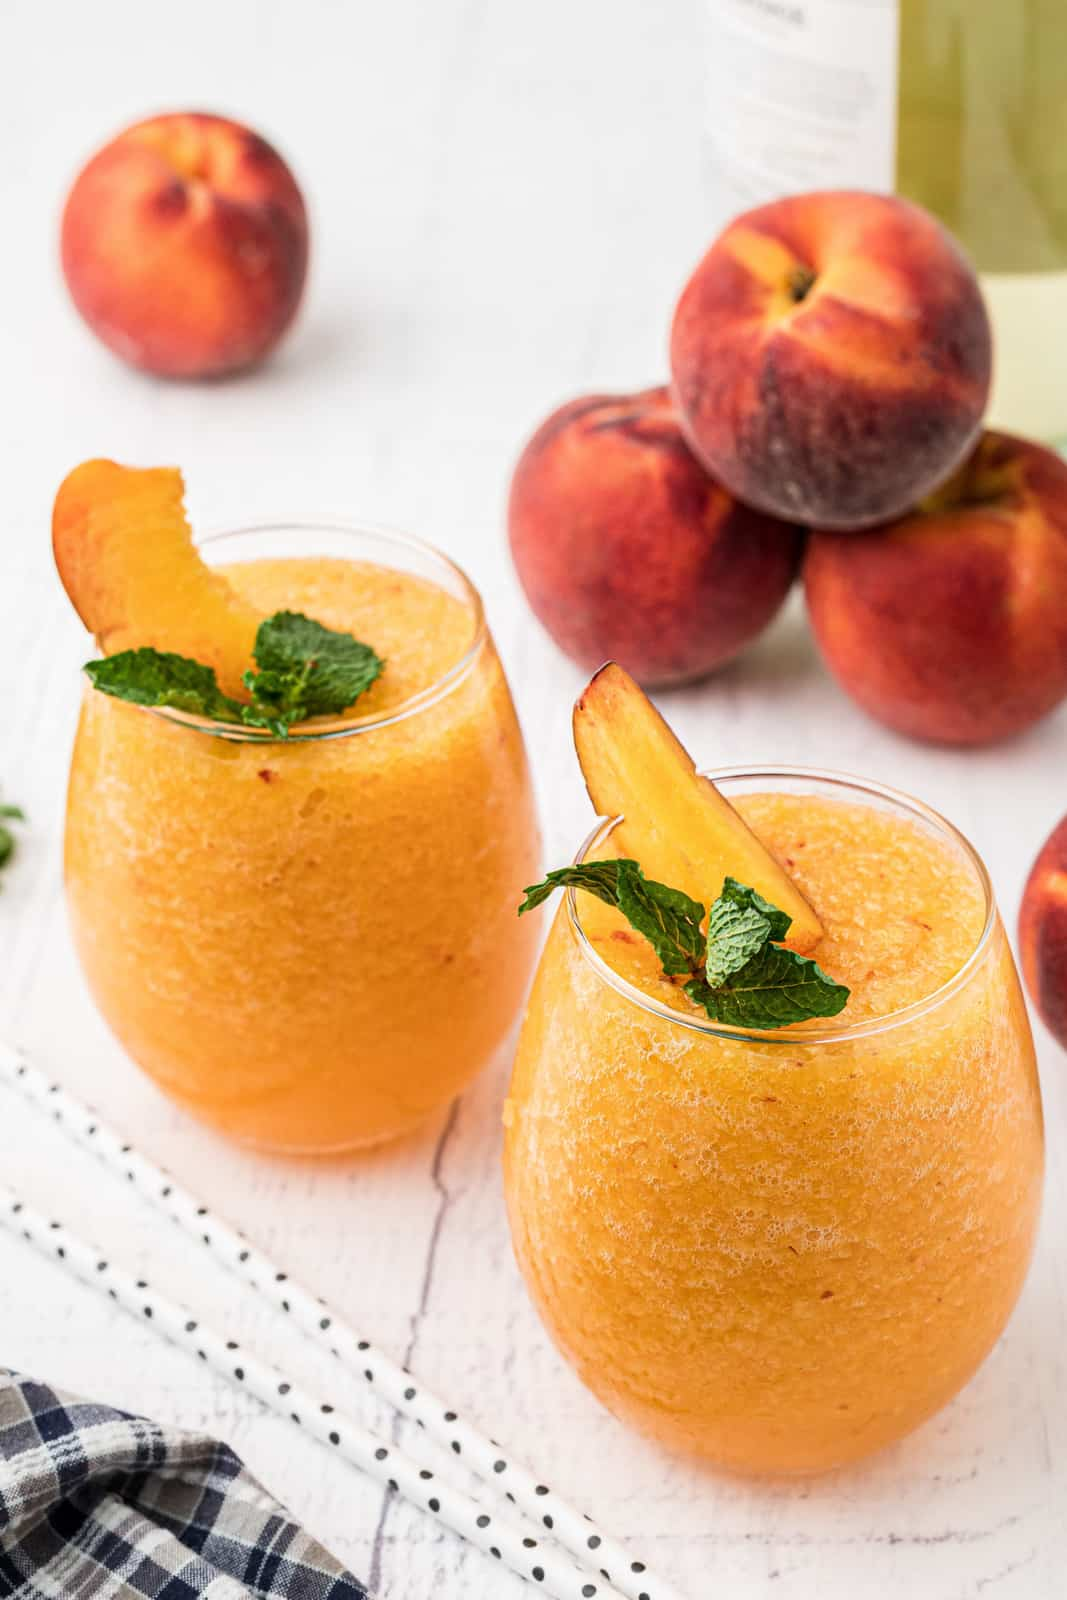 Two Peach Wine Slushies garnished in glasses with fresh peaches in background